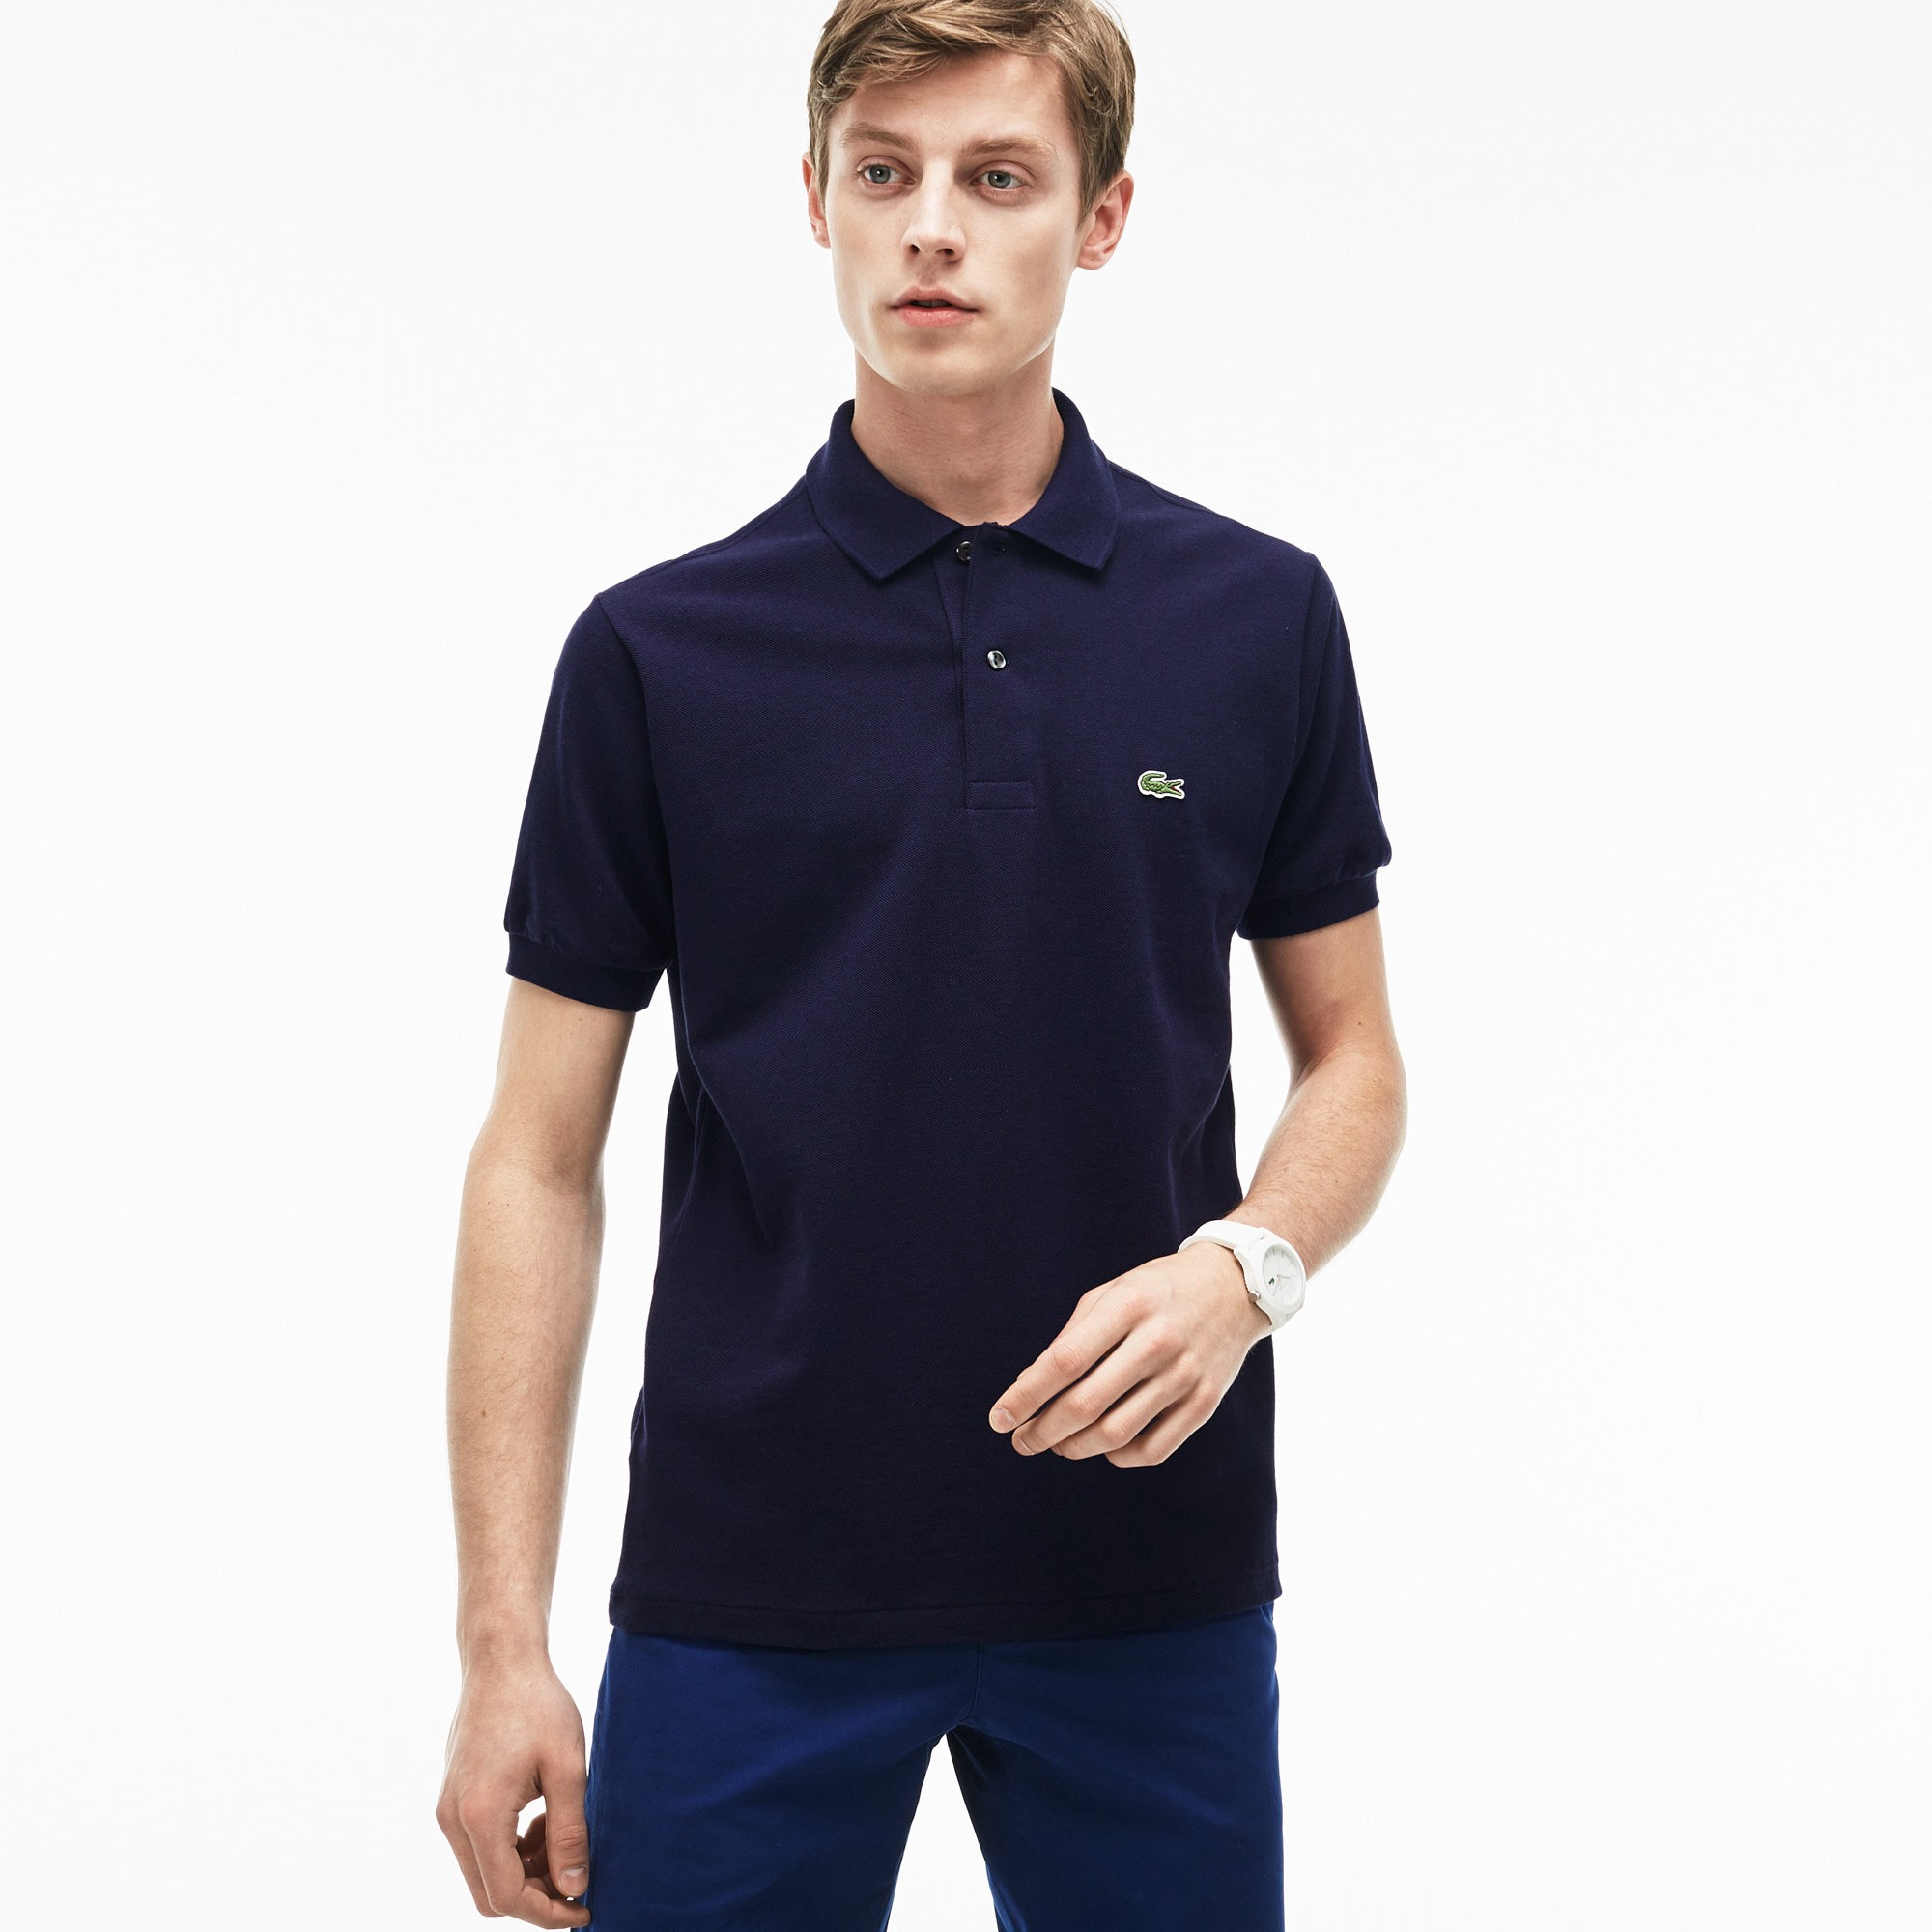 fbea7bc7b8 LACOSTE Men's Classic L.12.12 Chine Piqué Polo Shirt - blue pigment chine. # lacoste #cloth #